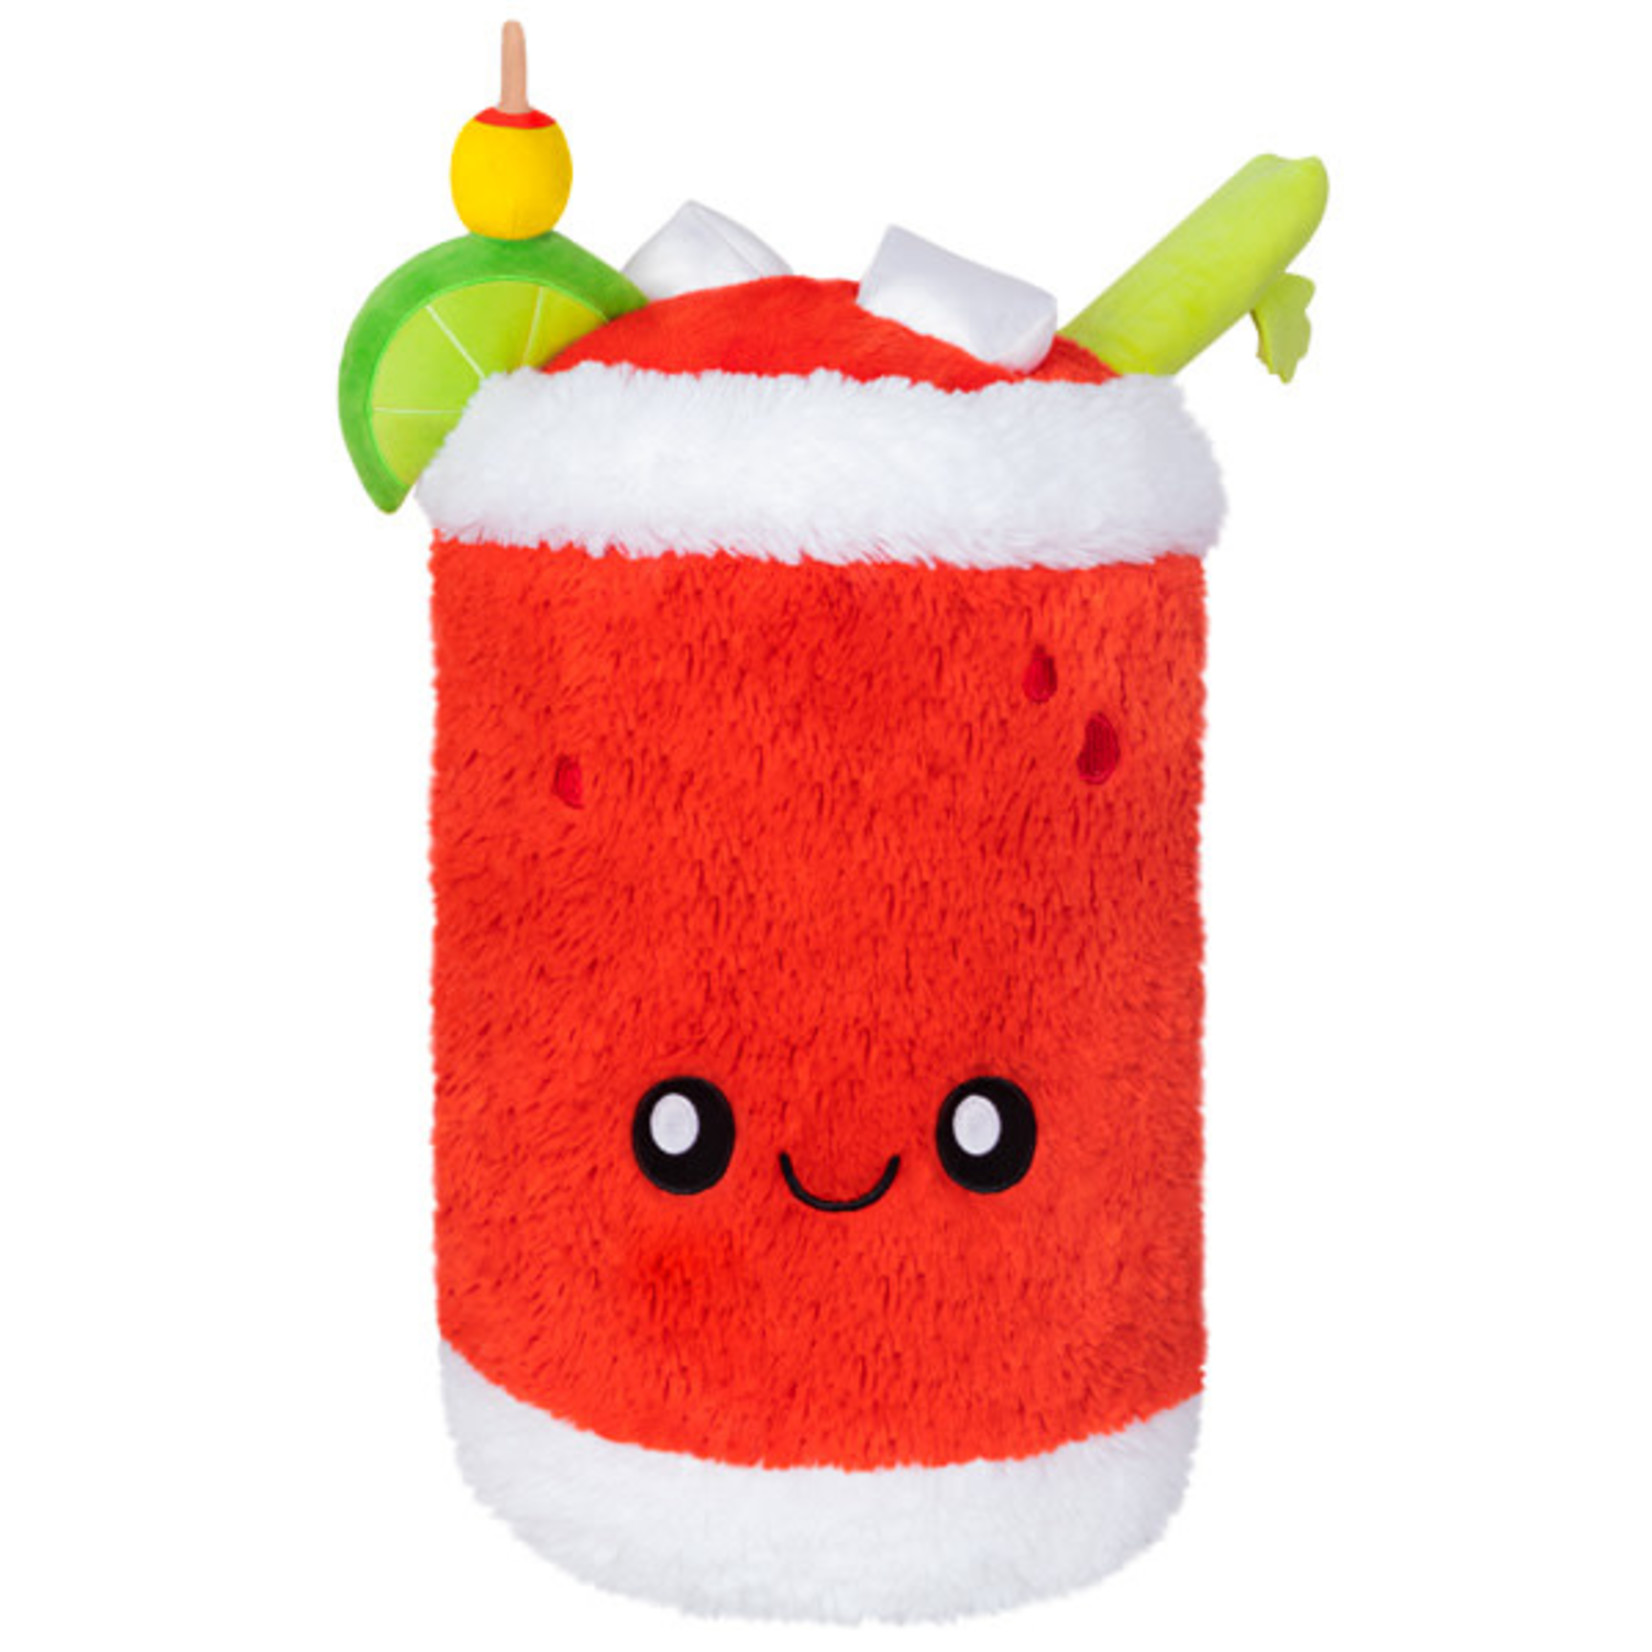 Squishable Bloody Mary